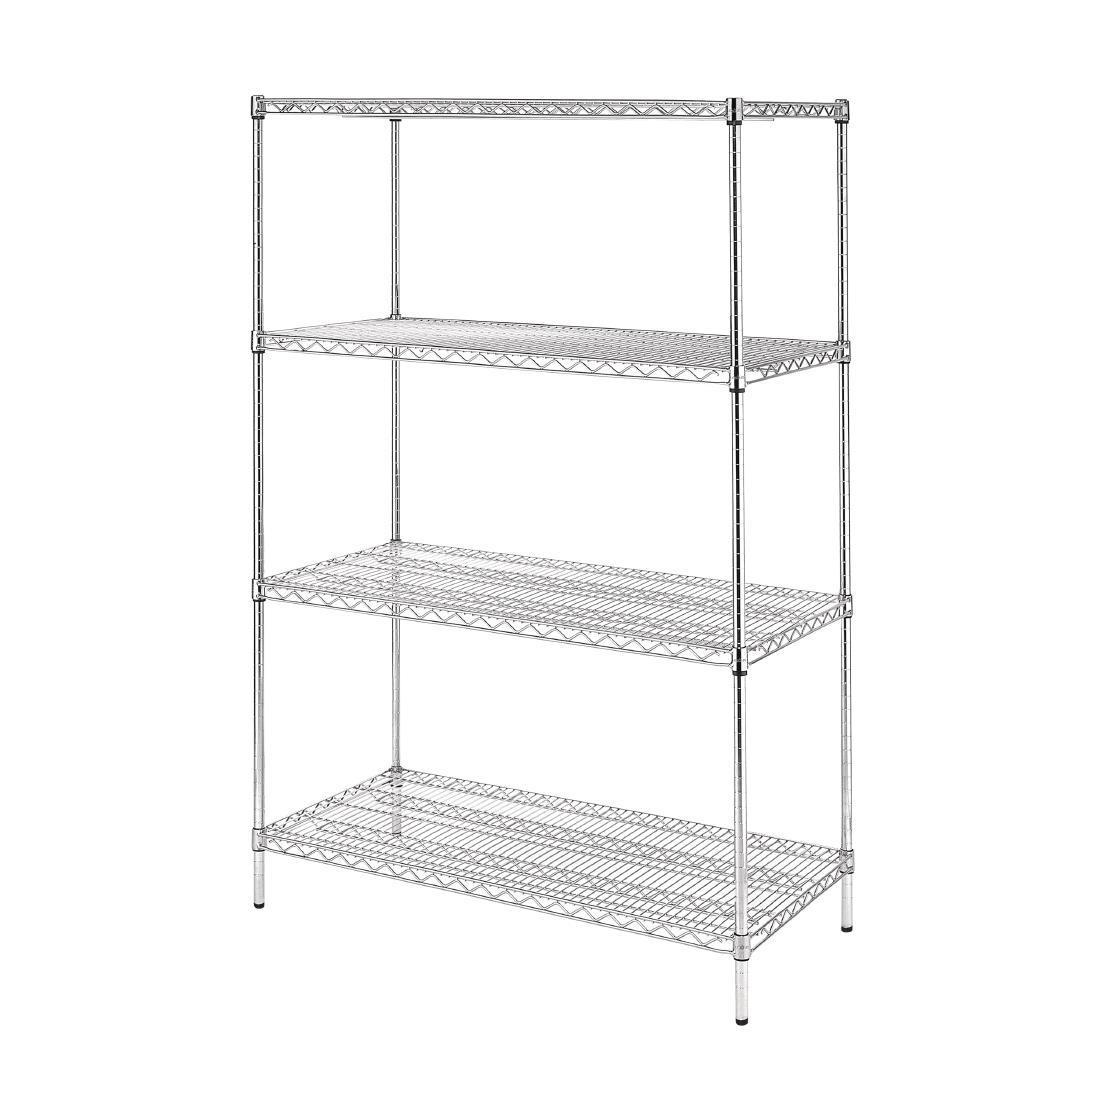 Vogue 4 Tier Wire Shelving Kit 1220x610mm - U257